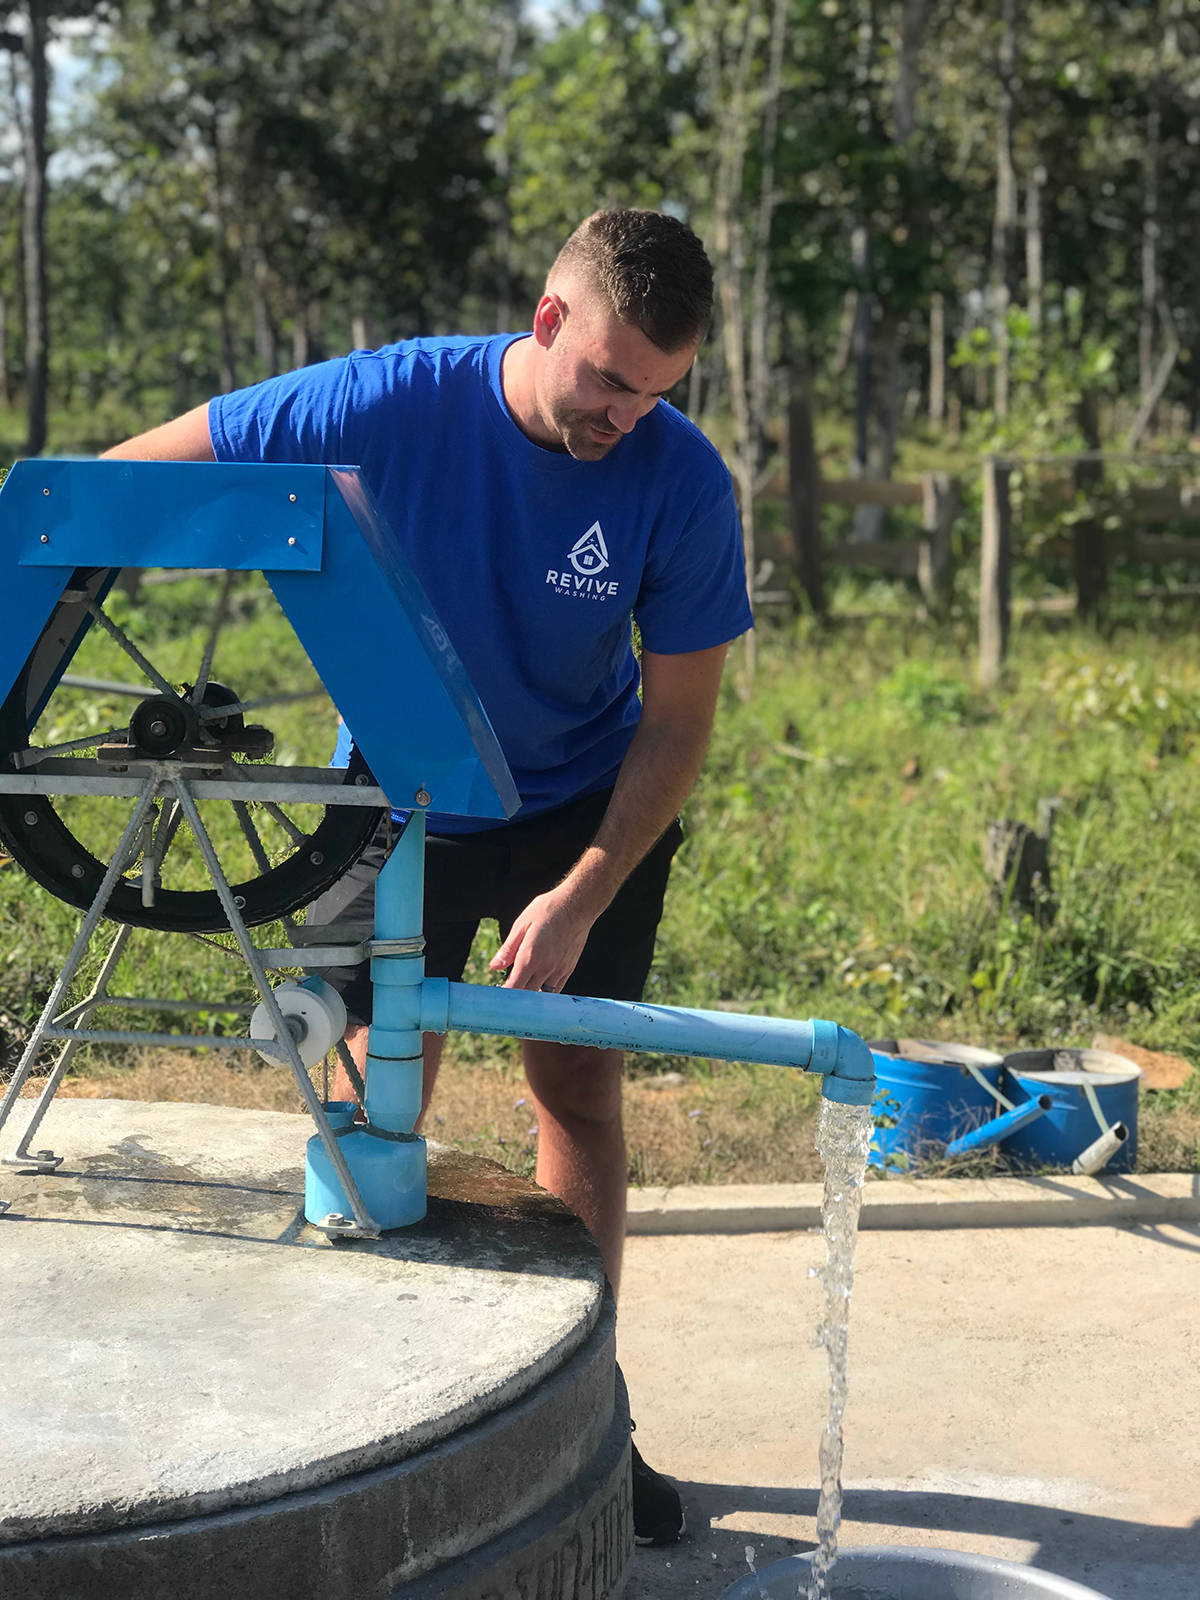 David Moerman pumps water out of a well in Pursat, Cambodia in December, 2019. Moerman's company, Revive Washing, funded the water well. (Photo: Submitted)